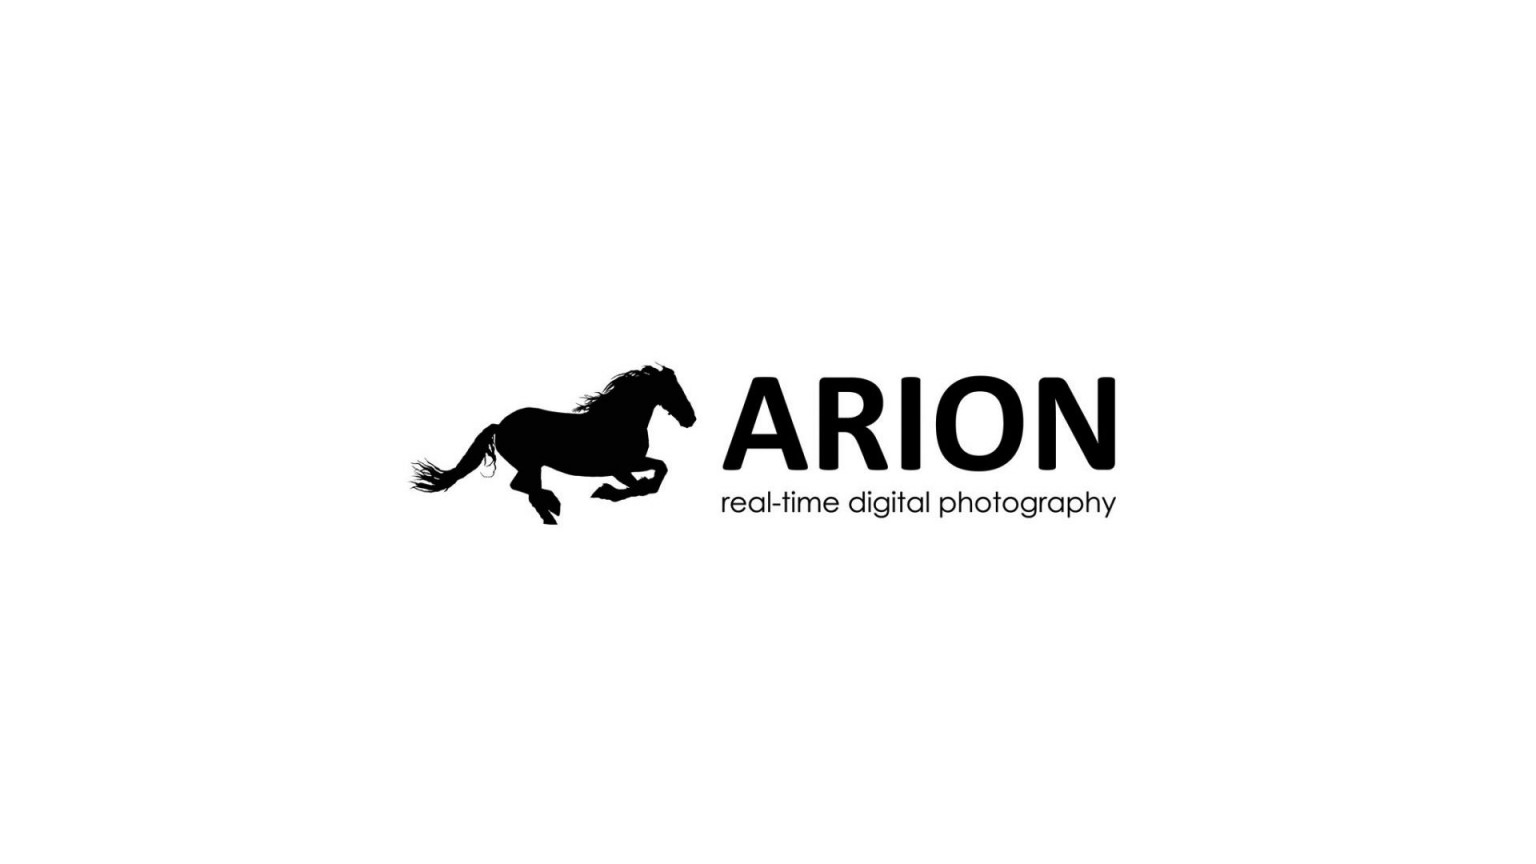 Arion 2.0 stand-alone